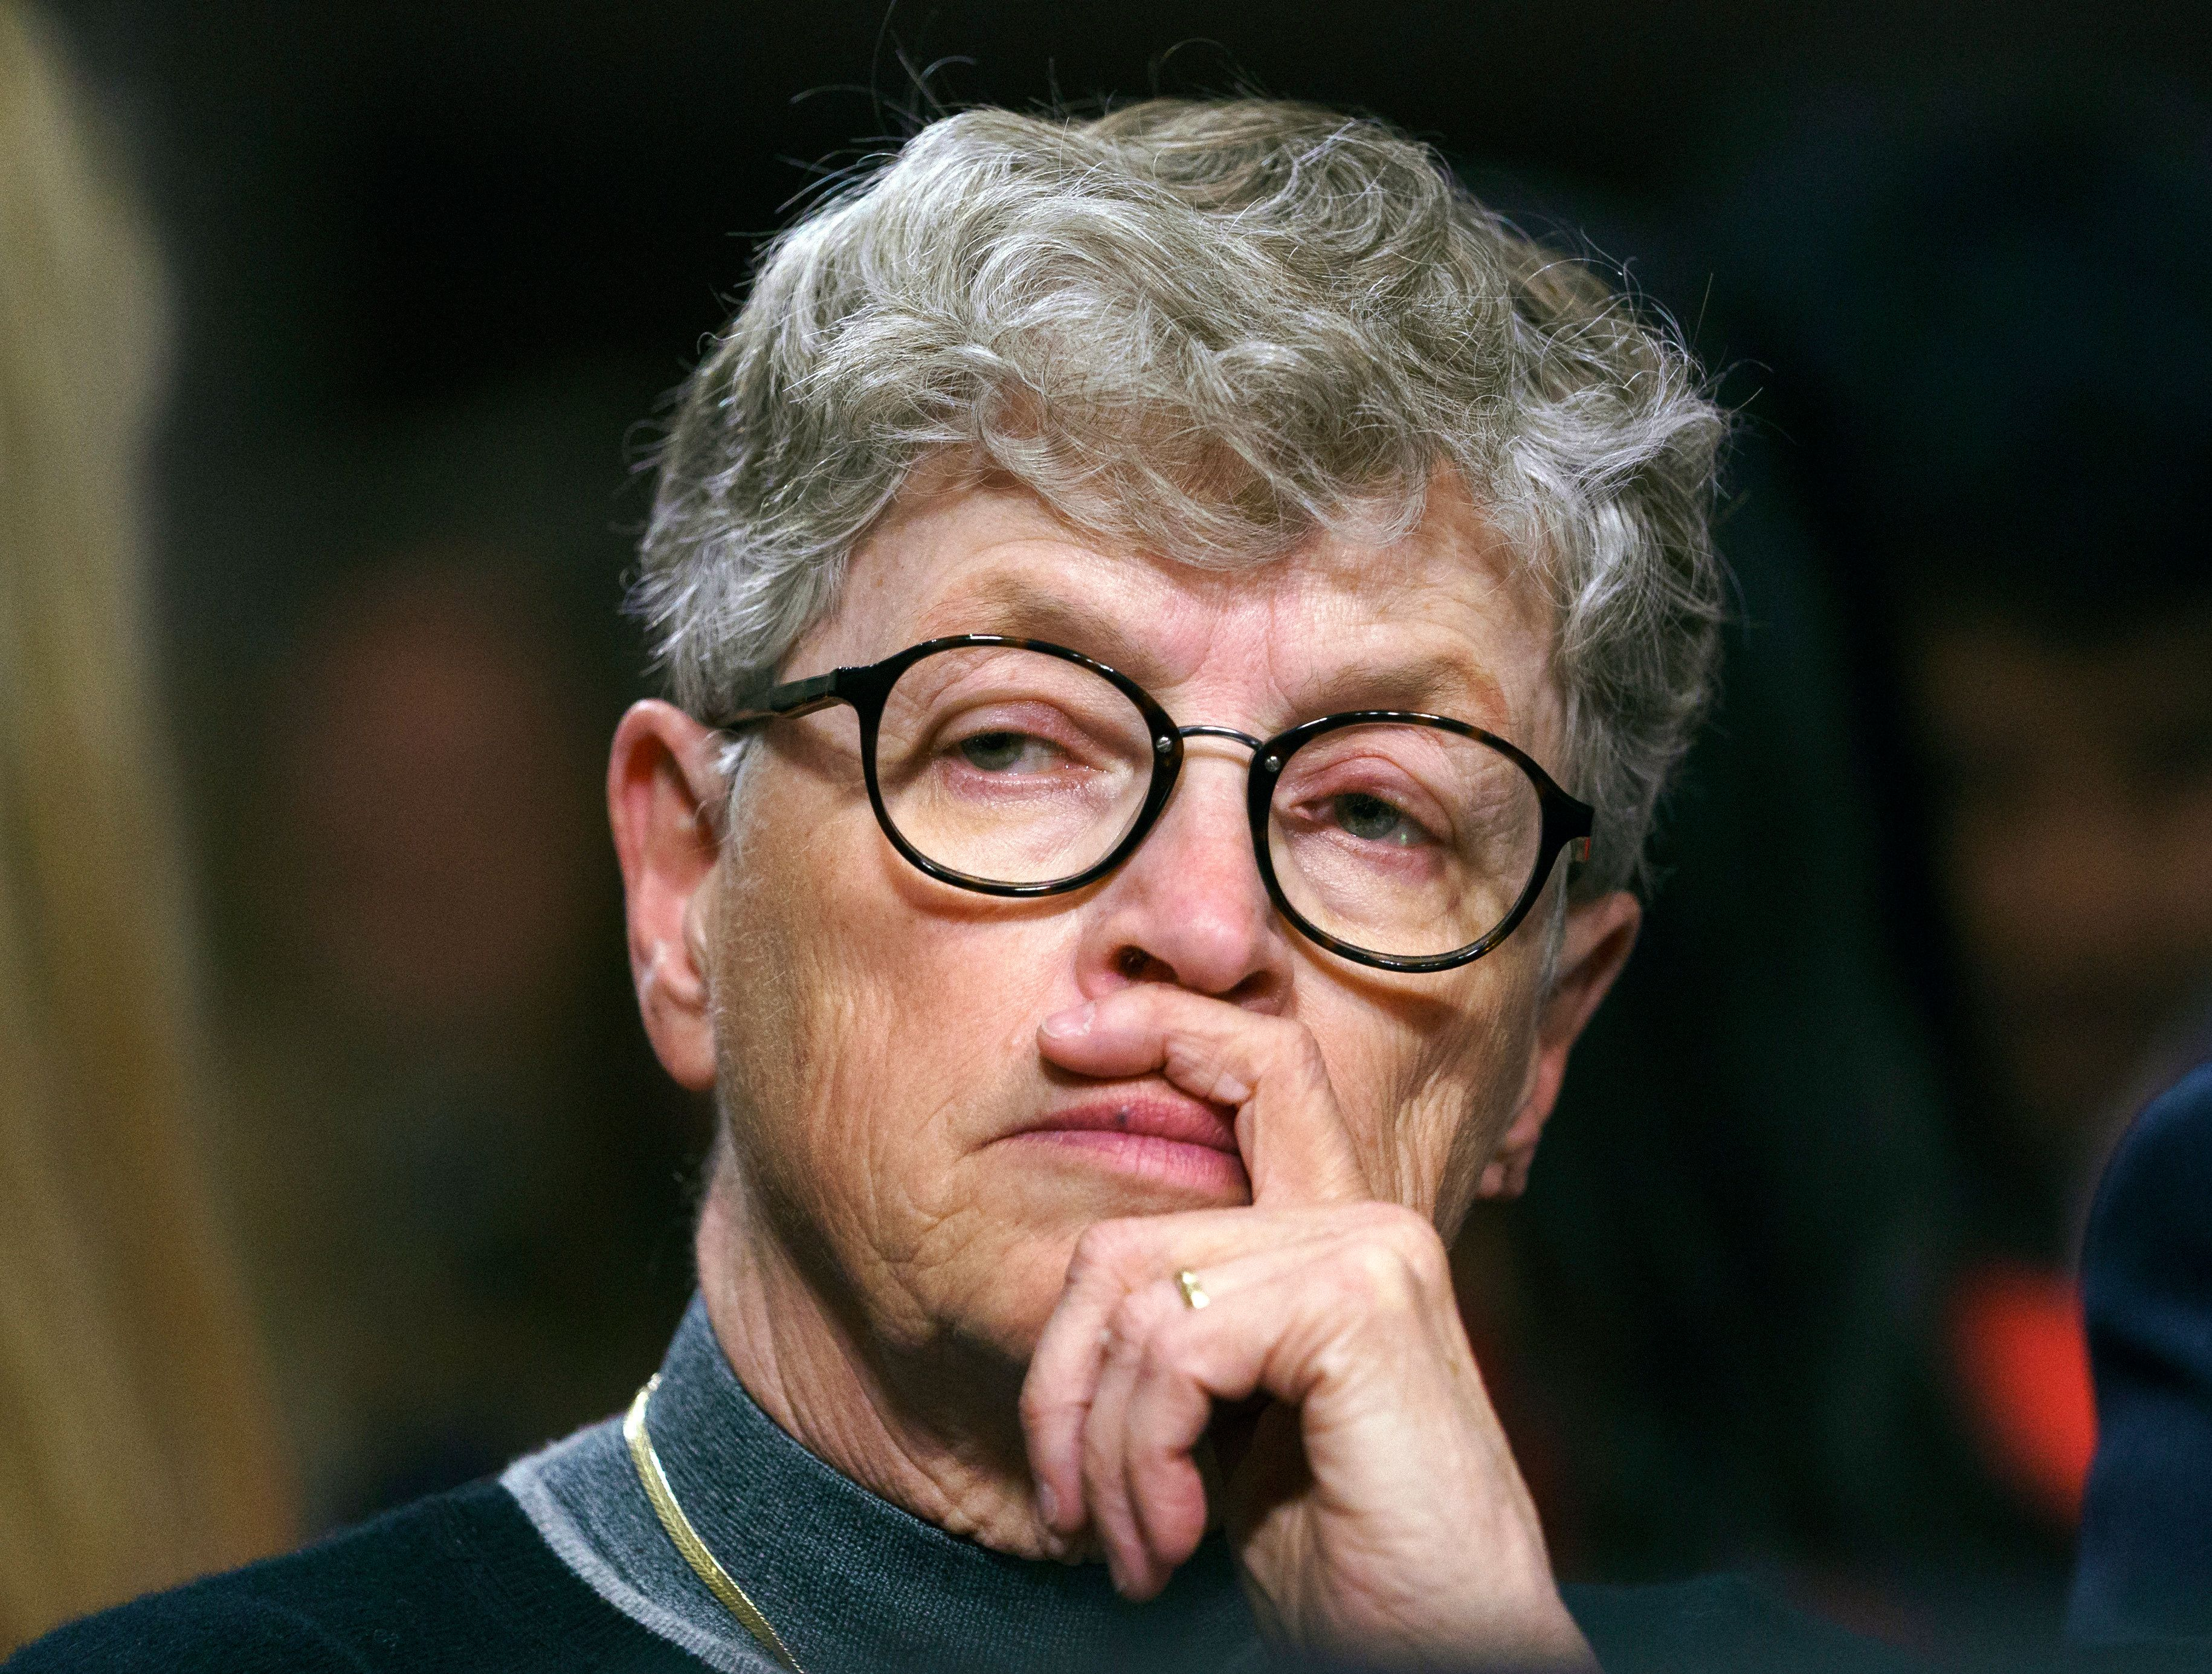 Former Michigan State president Lou Anna Simon pauses before testifying on Capitol Hill in Washington on June 5, 2018.